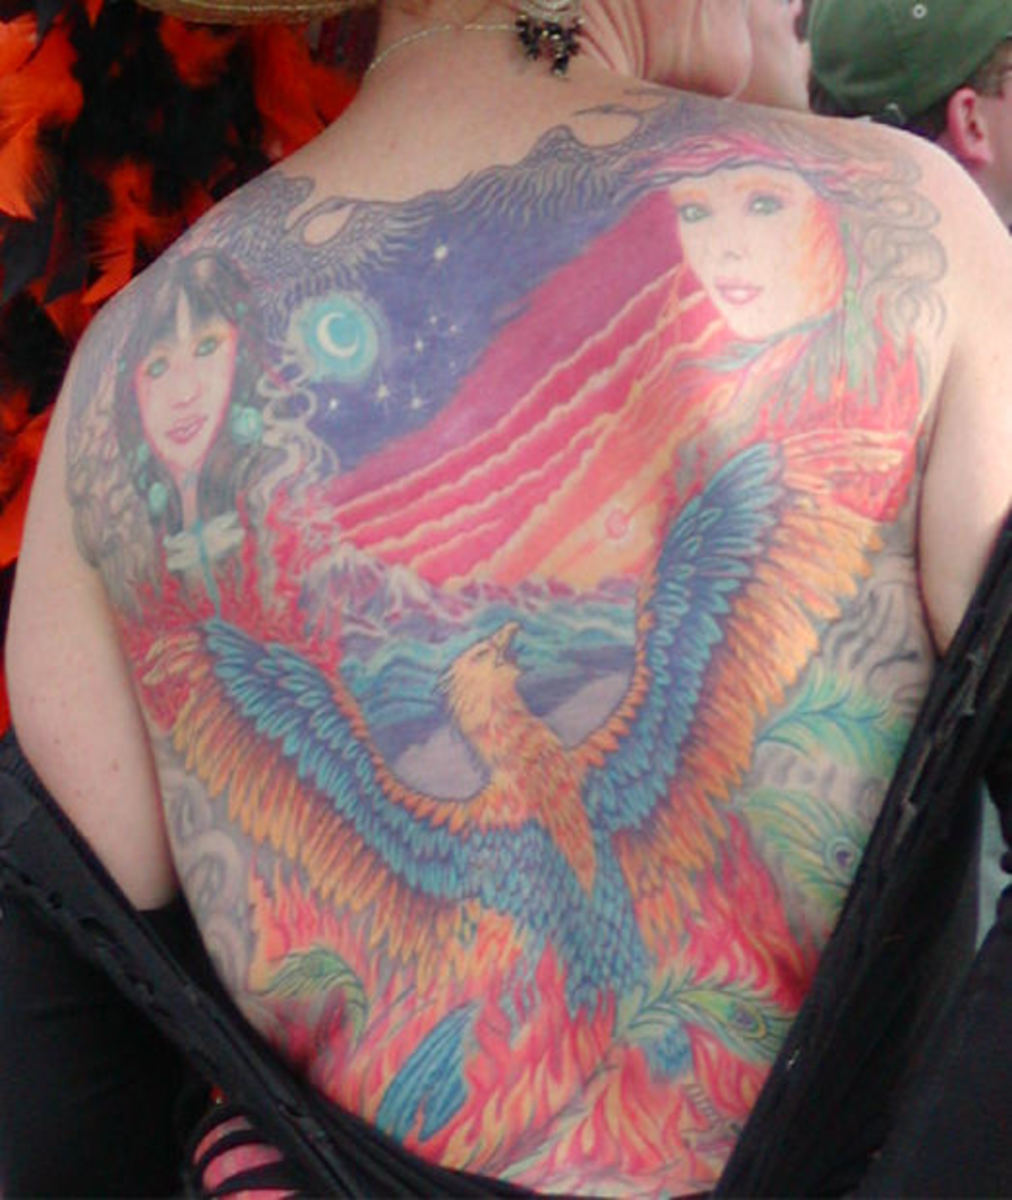 Feel the awesomeness that is this full back piece.